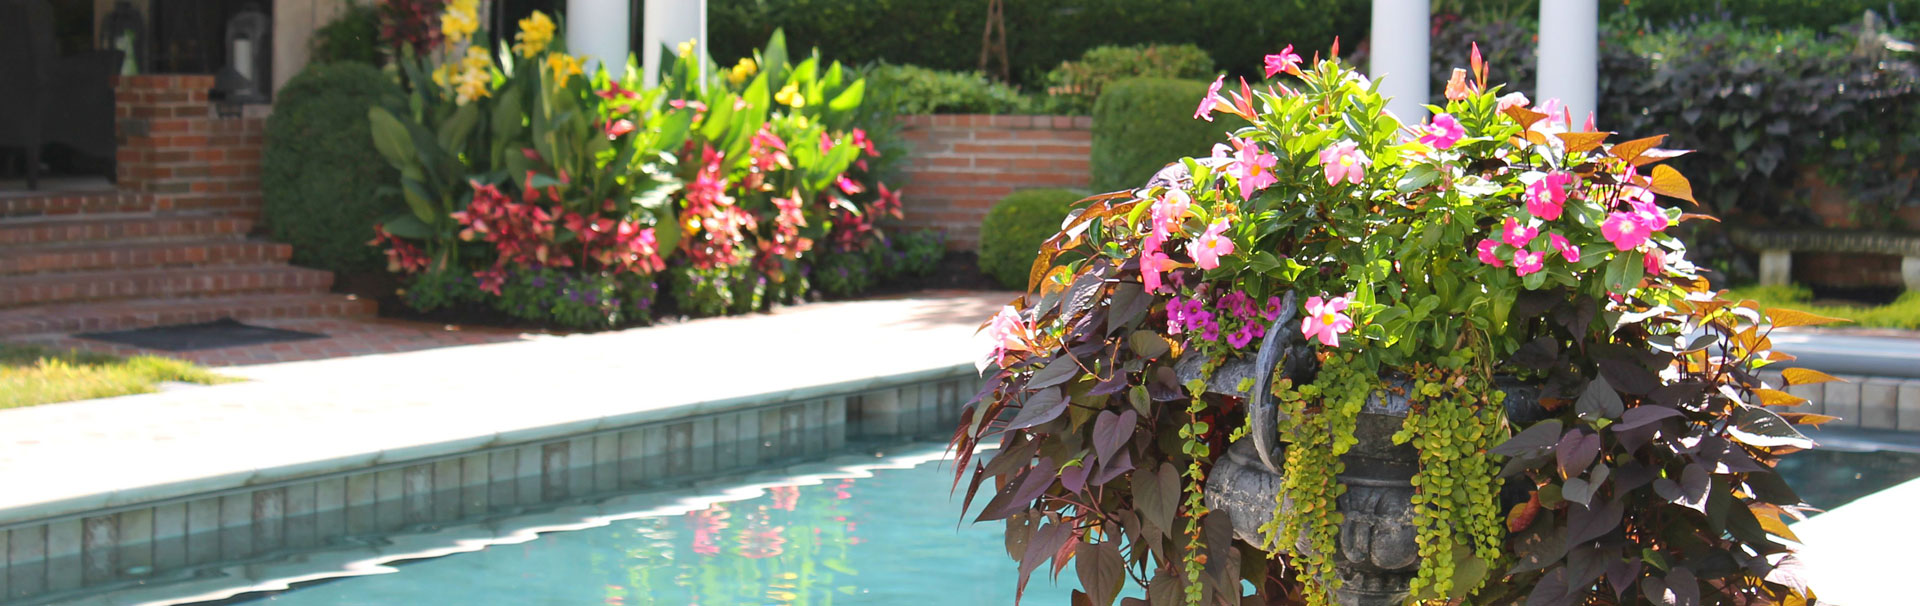 pool landscaping in kansas city